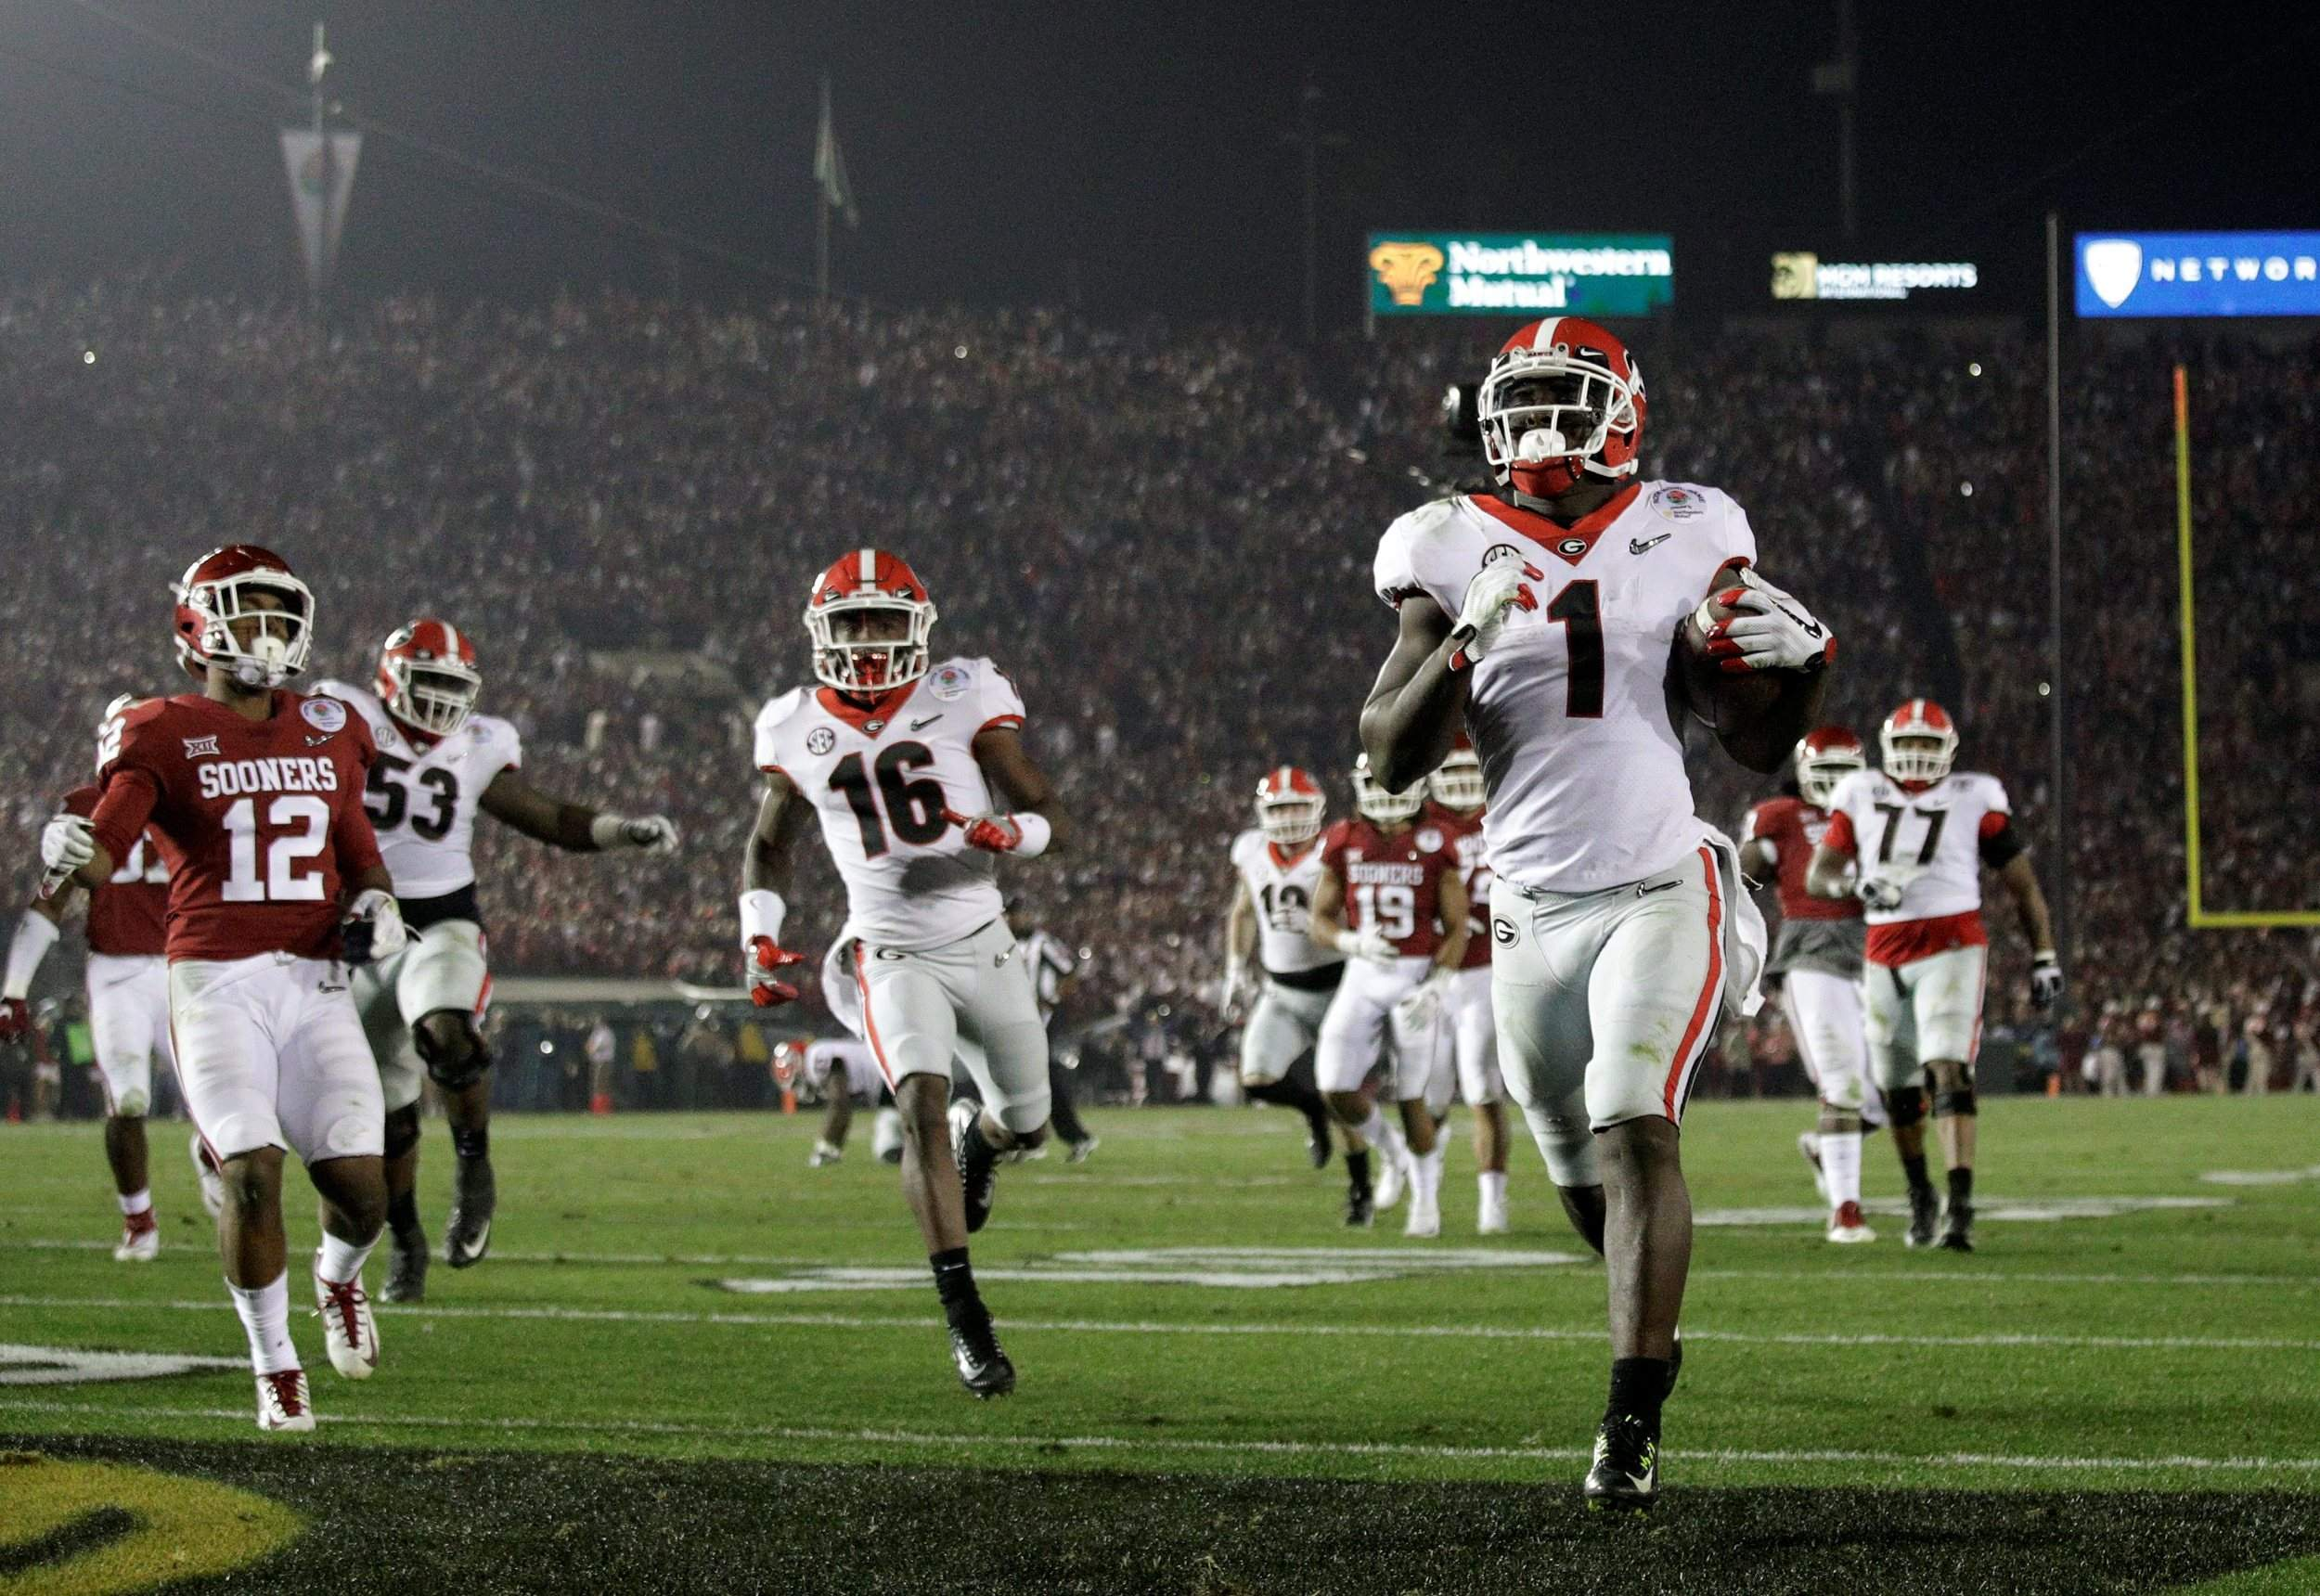 ba3643ed3 Georgia running back Sony Michel (1) scores a touchdown in overtime against  Oklahoma in the Rose Bowl on Monday in Pasadena